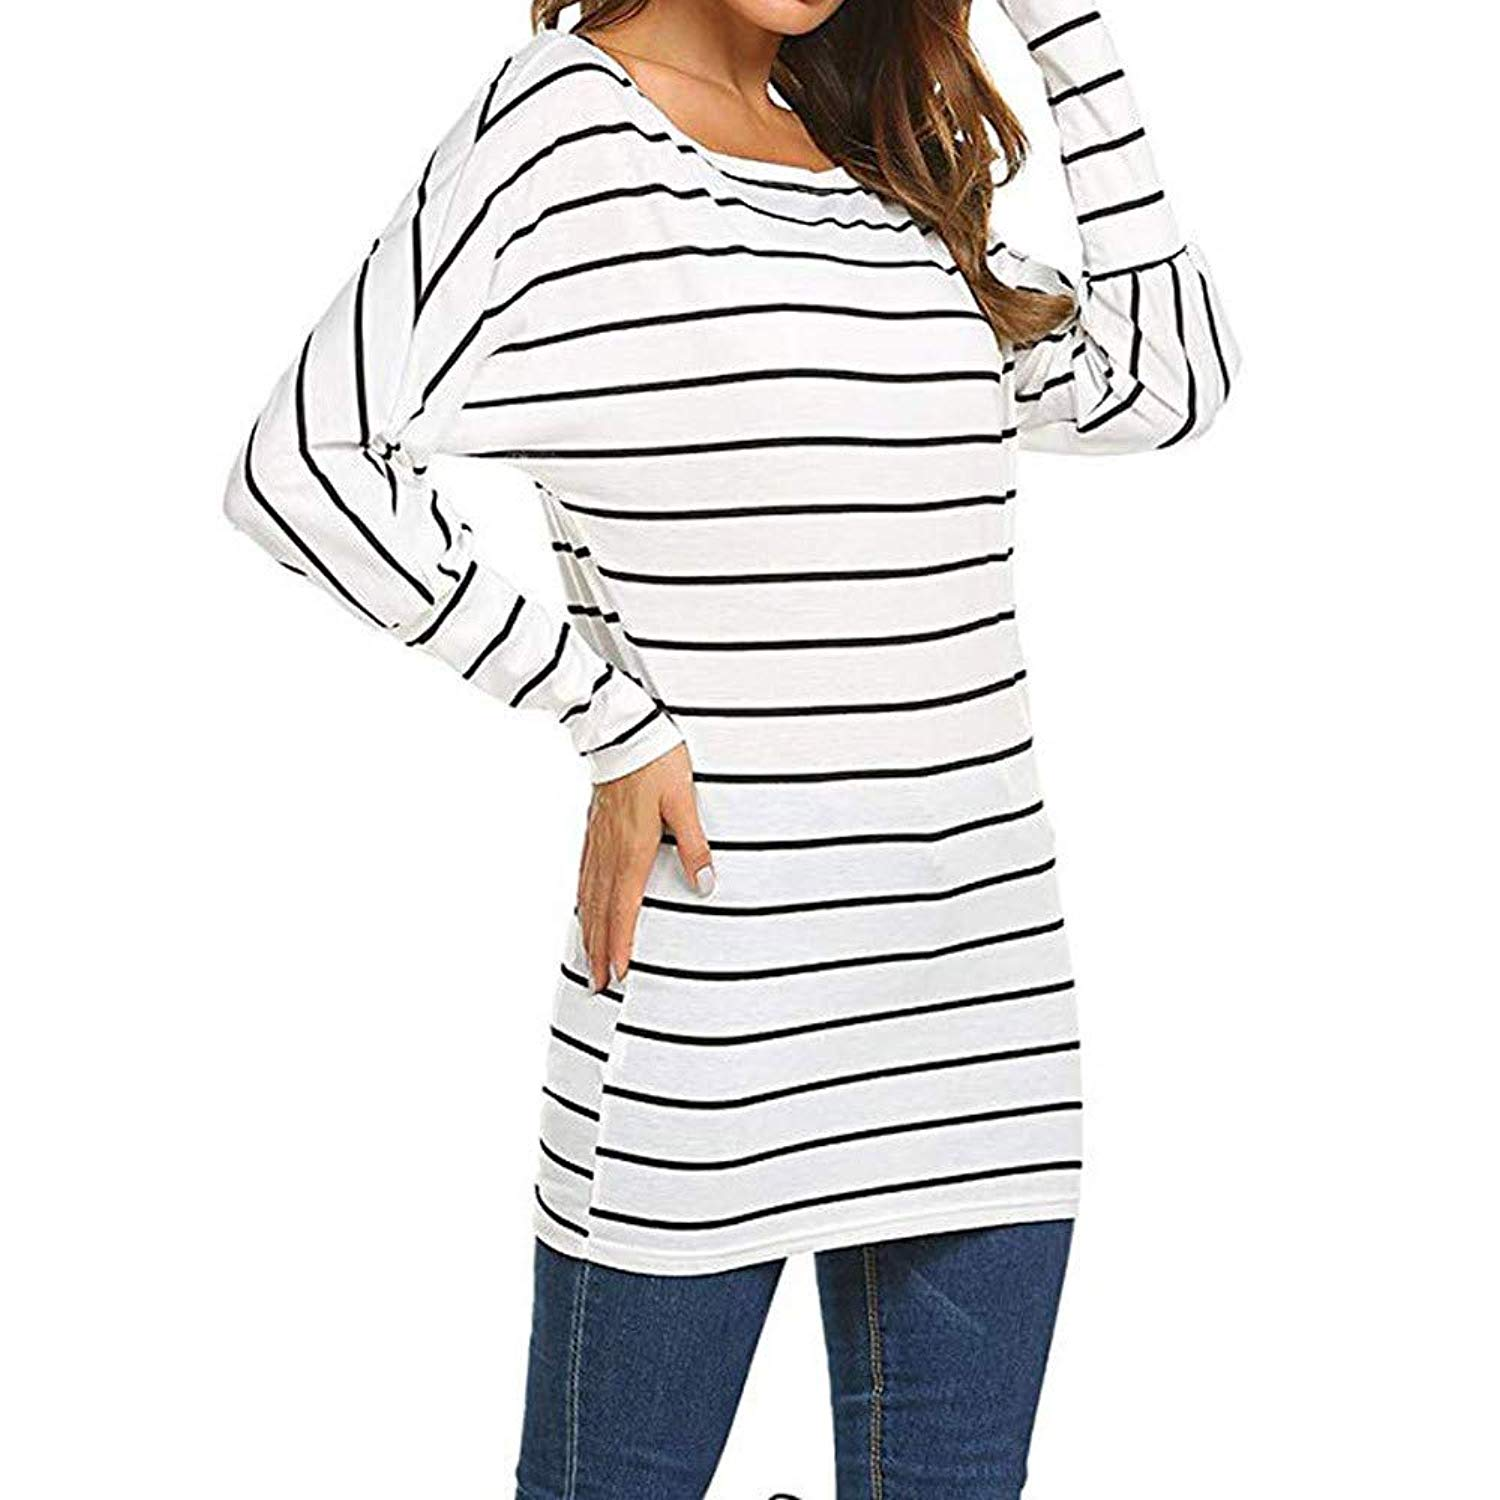 2bea4d2cb0 Women s Autumn Striped Cold Shouder Shirt Long Sleeve Casual T